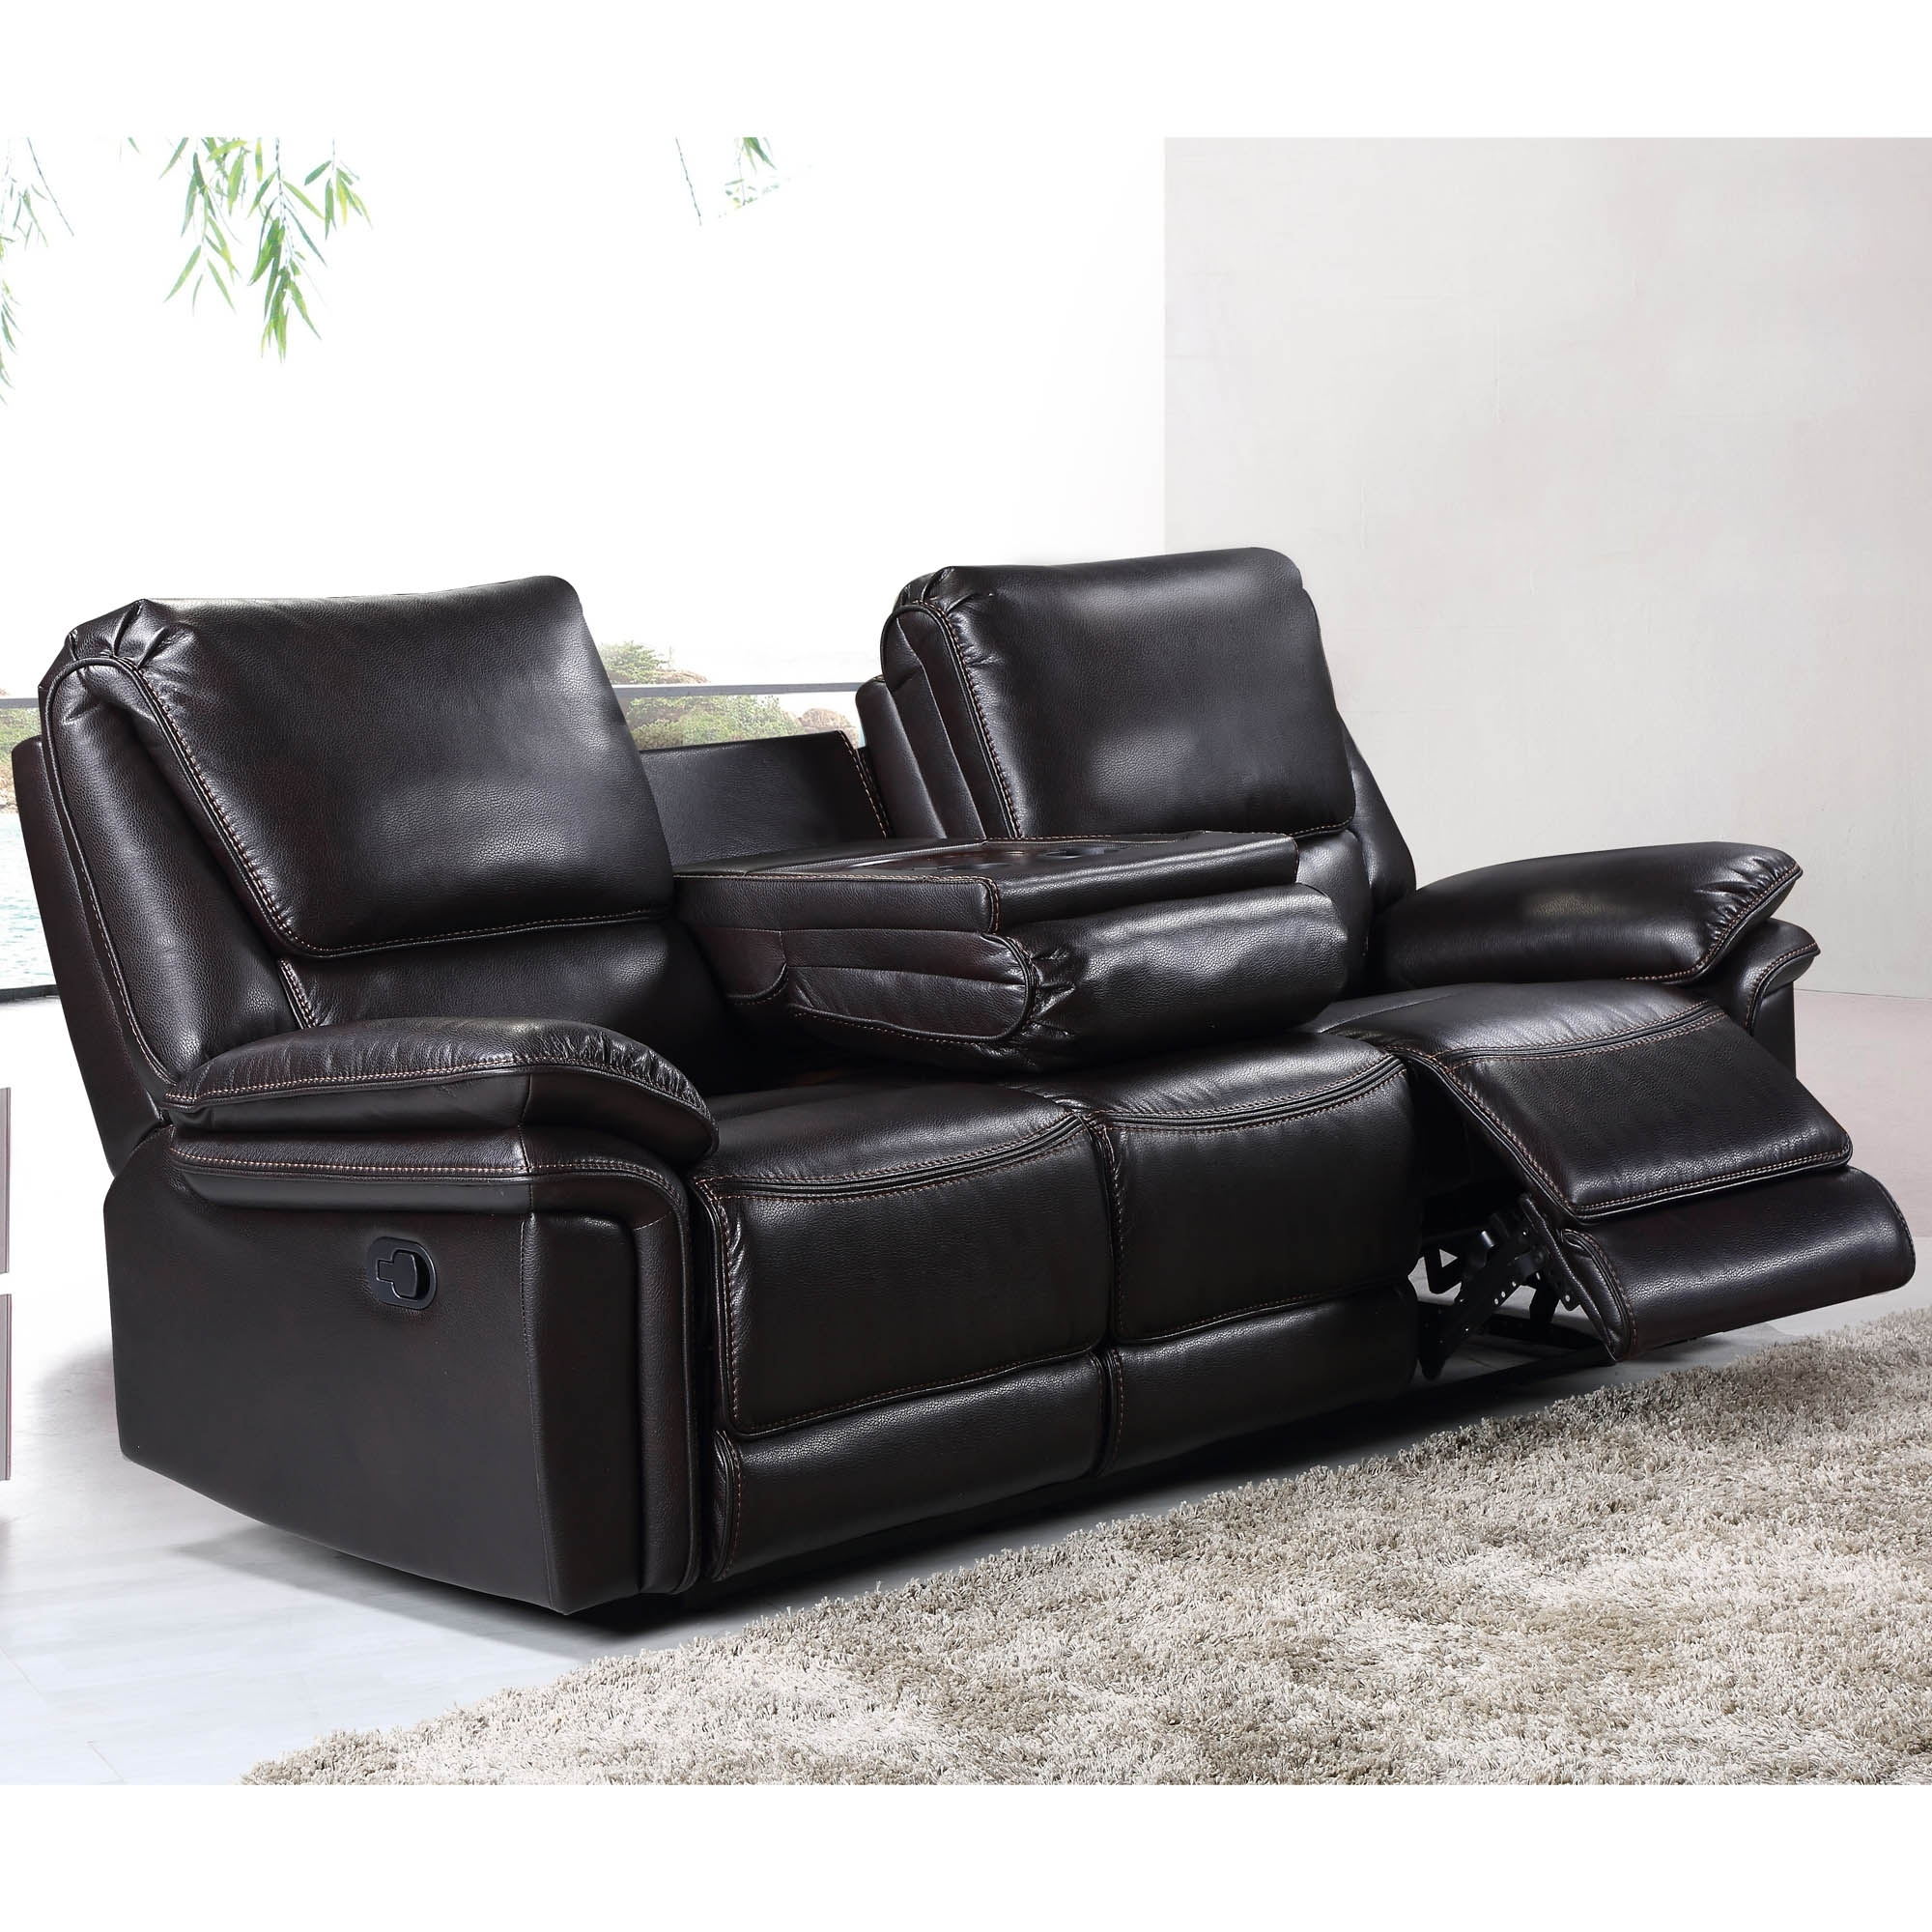 Houston 3 Seater Reclining Sofa